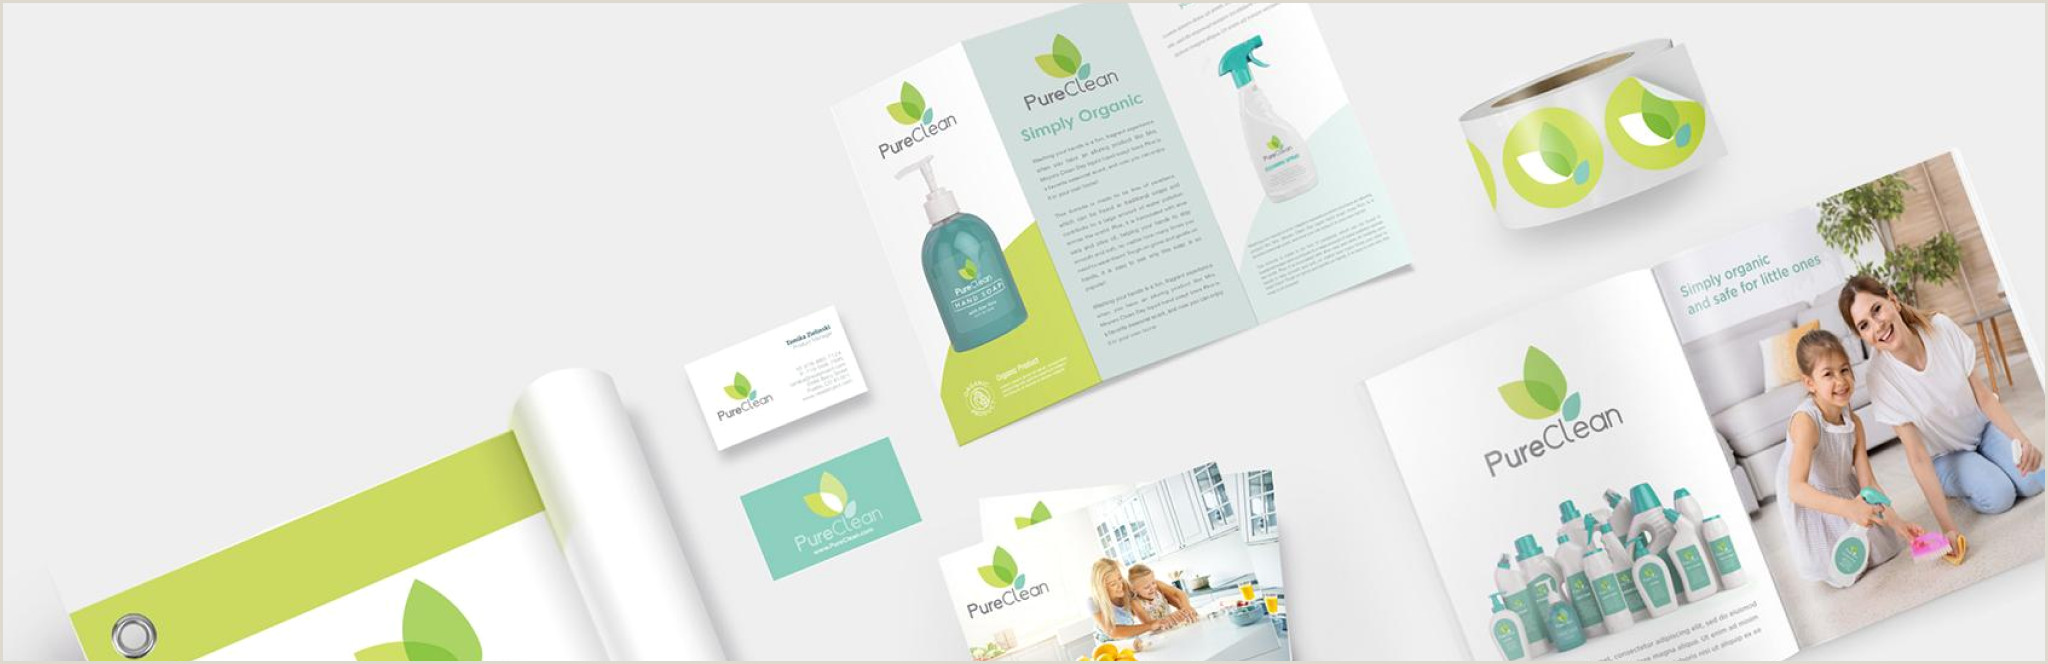 Facebook Logos For Business Cards Printplace High Quality Line Printing Services